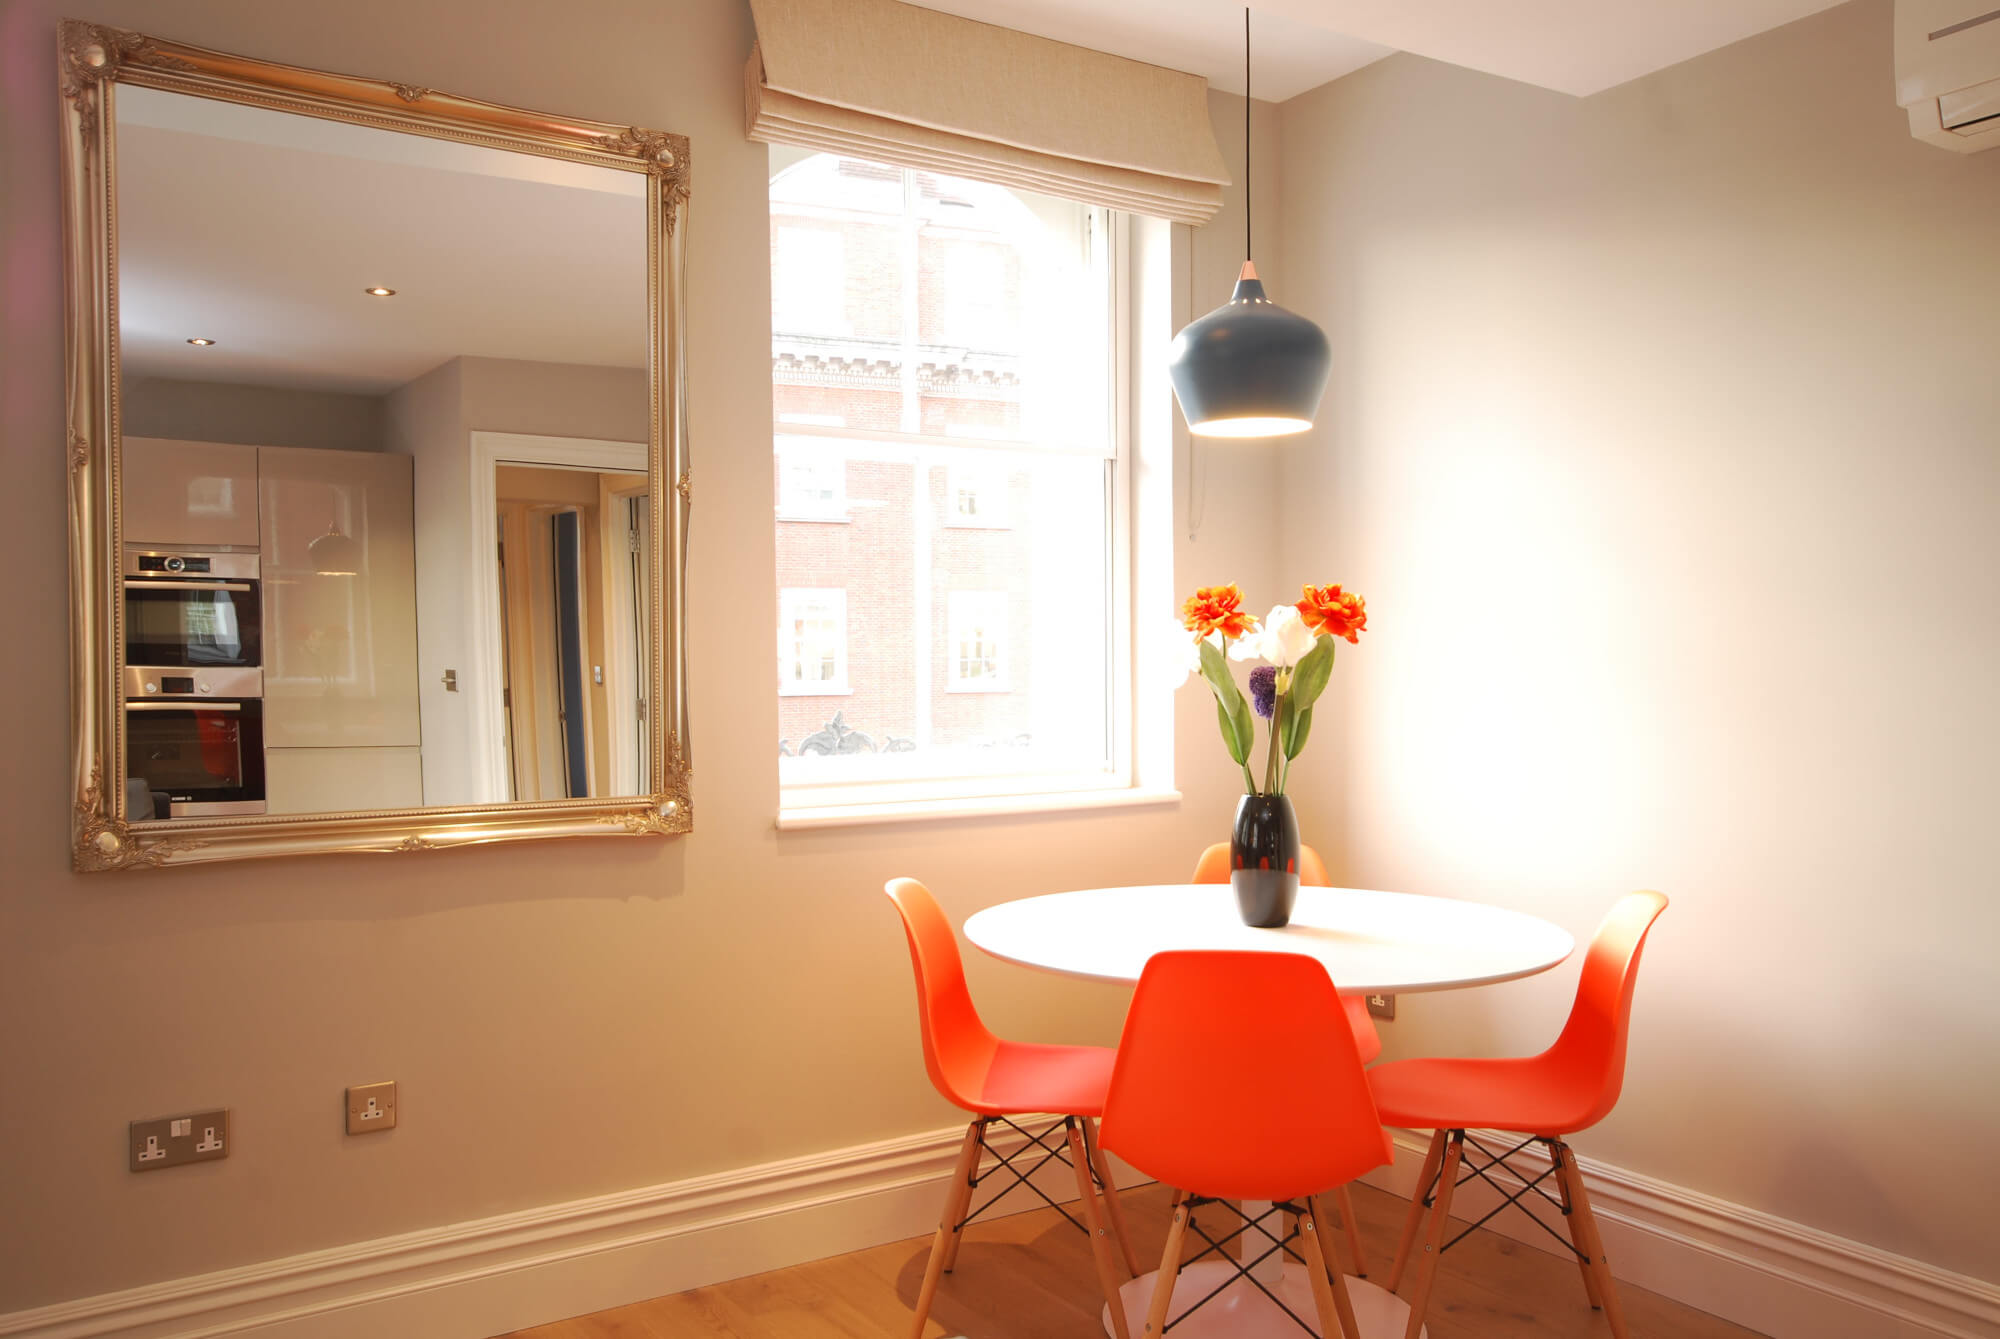 Two bedroom rental London - dining area